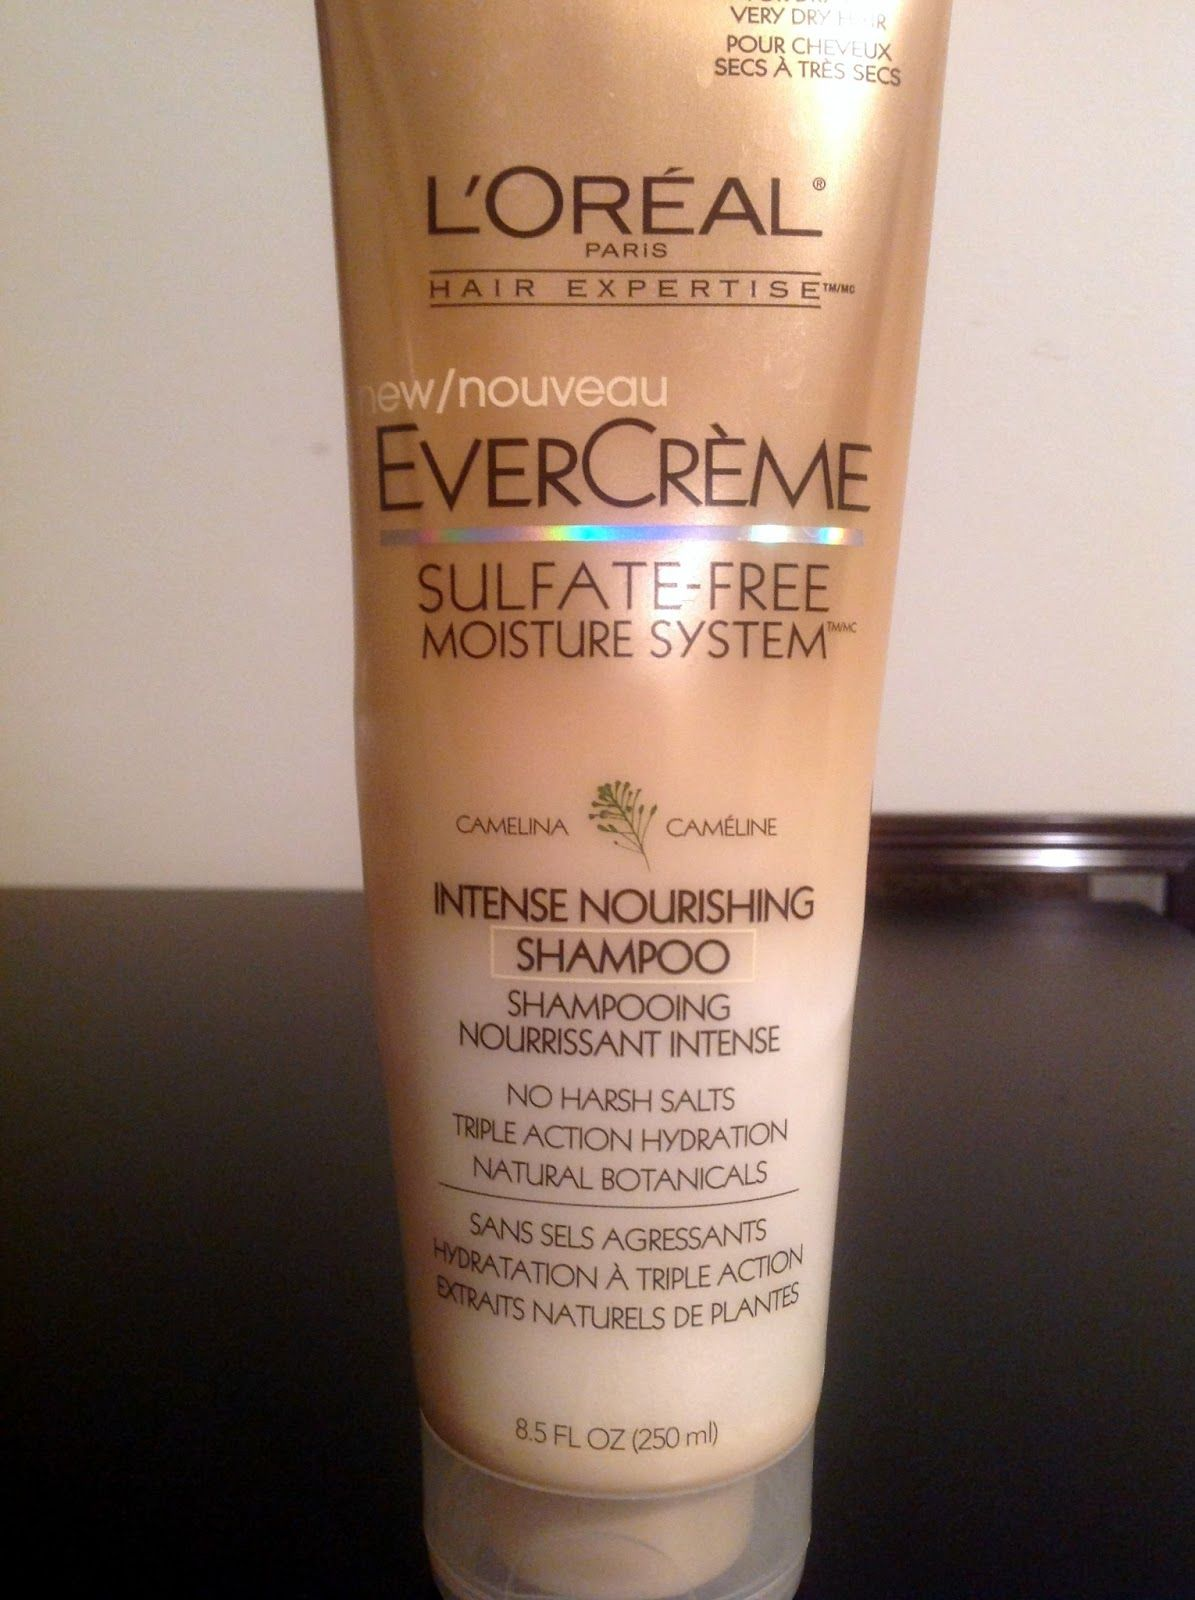 Loreal Ever Cream Sulfate Free Shampoo Review And Some Info About Sulfates Correct Link